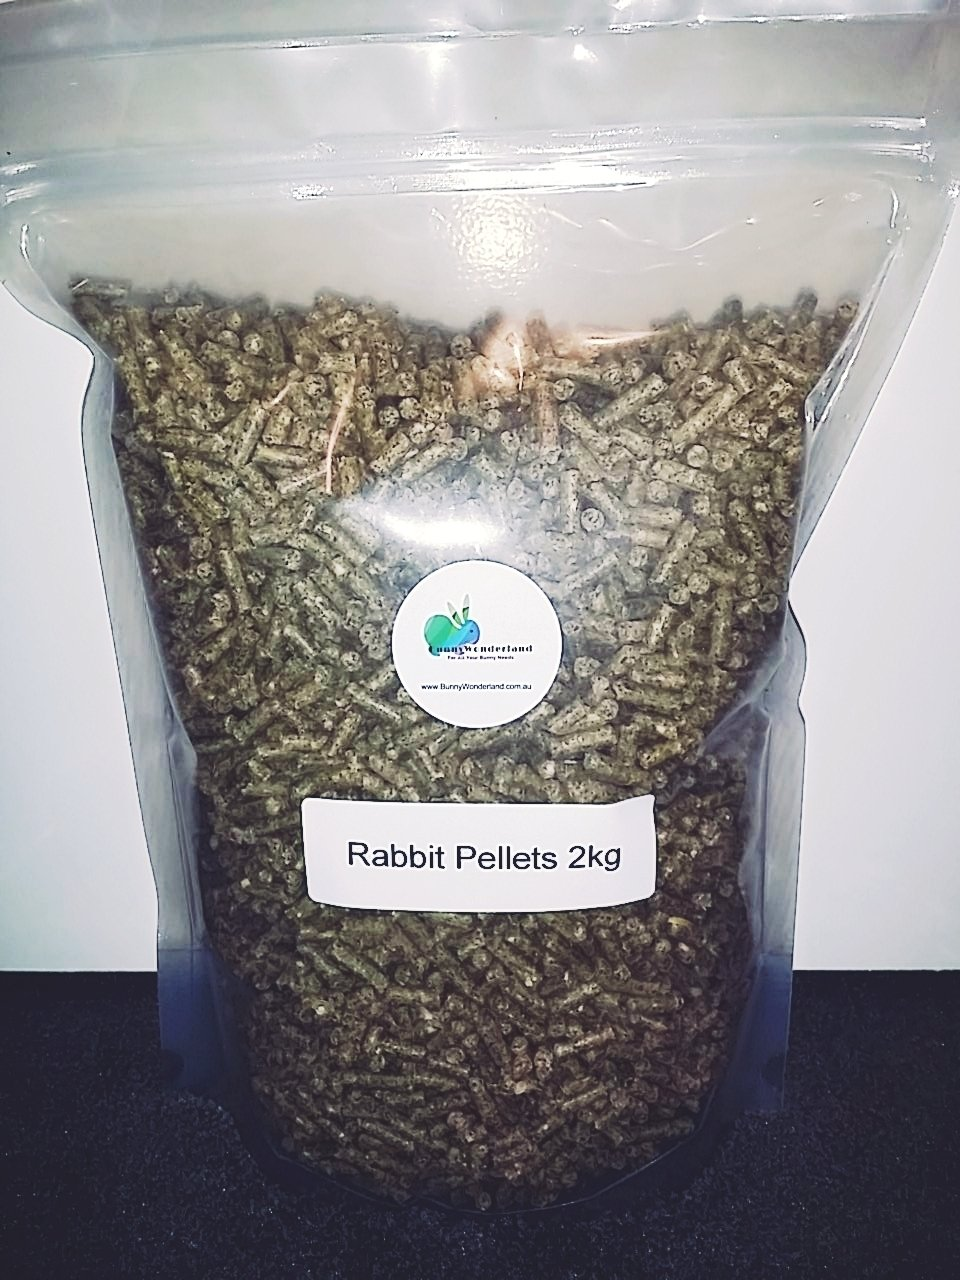 Barastoc Rabbit Pellets 2kg